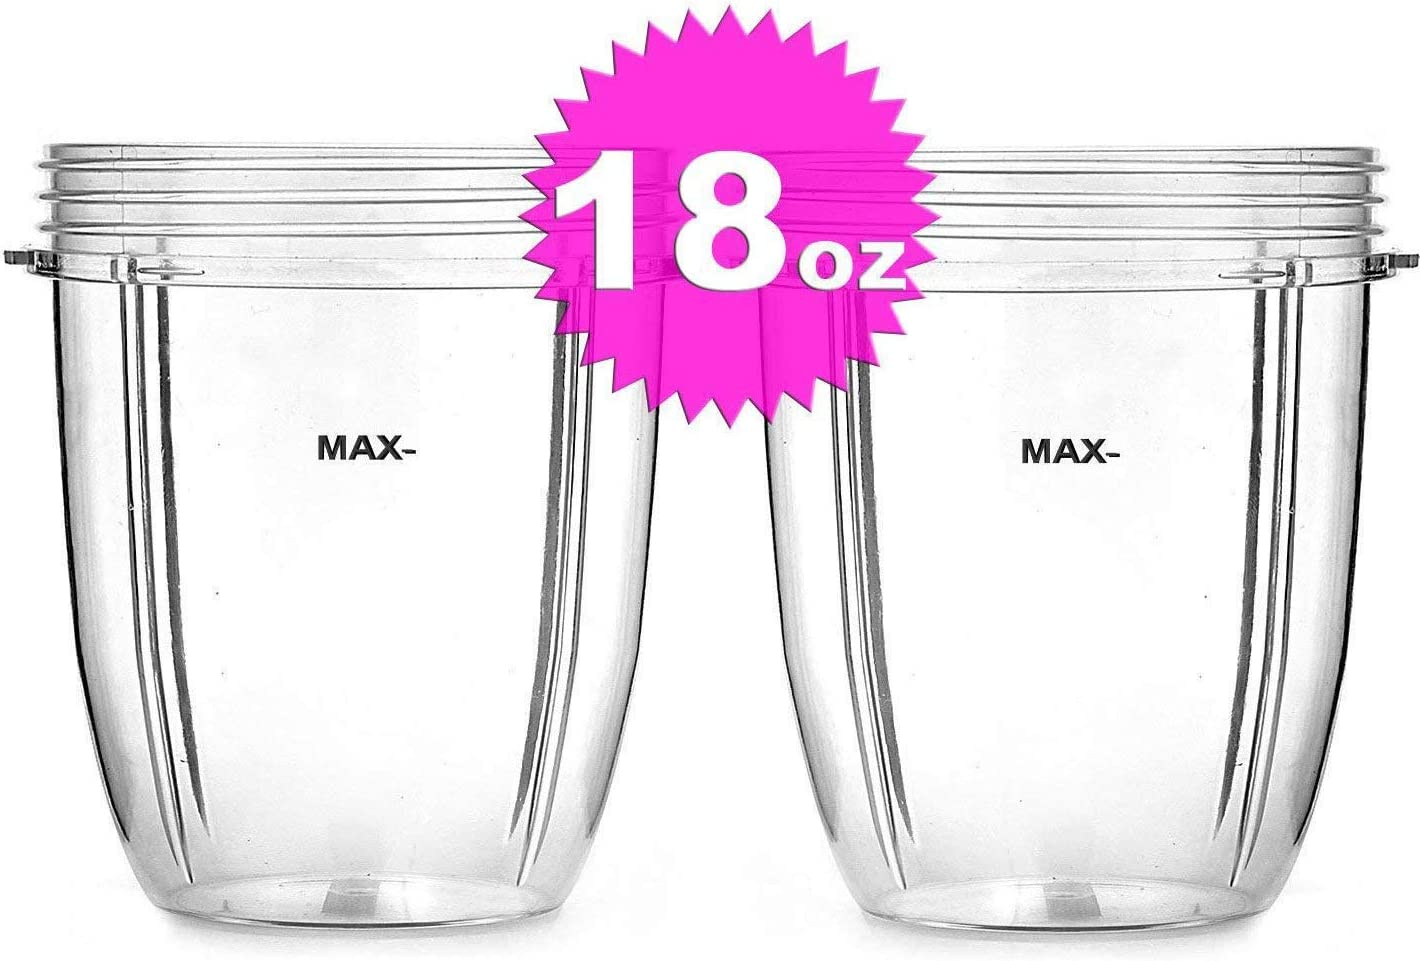 ELEFOCUS 2 X 18 oz Short Cups for Nutri Bullet